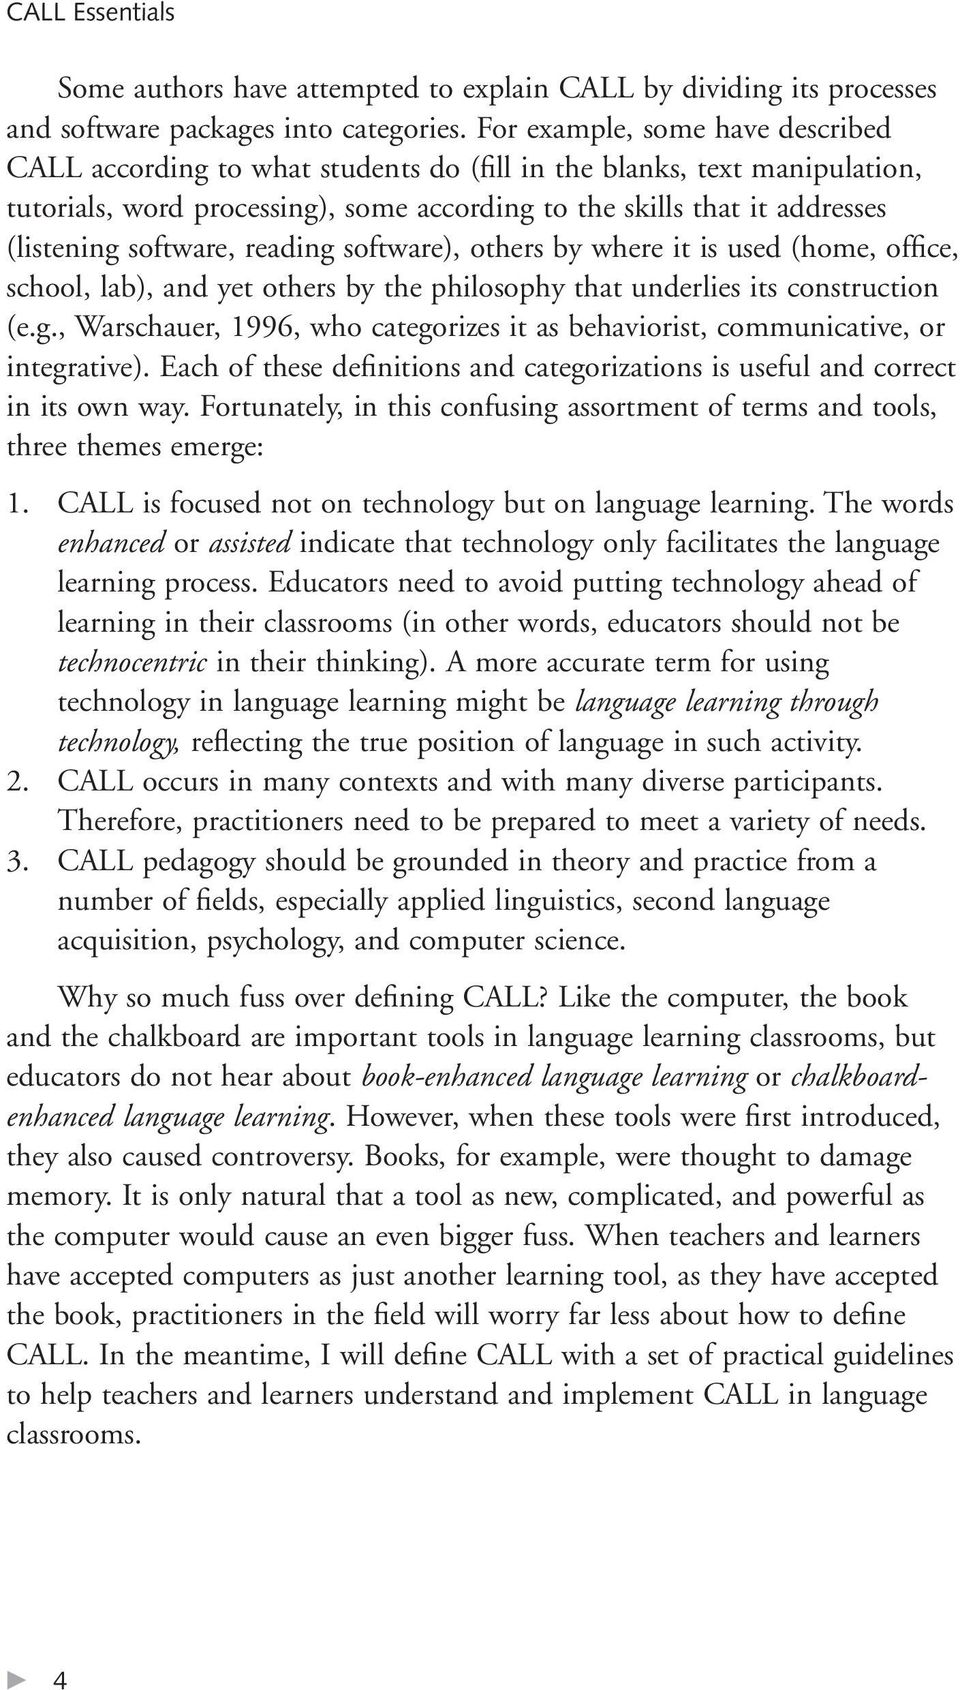 software, reading software), others by where it is used (home, office, school, lab), and yet others by the philosophy that underlies its construction (e.g., Warschauer, 1996, who categorizes it as behaviorist, communicative, or integrative).